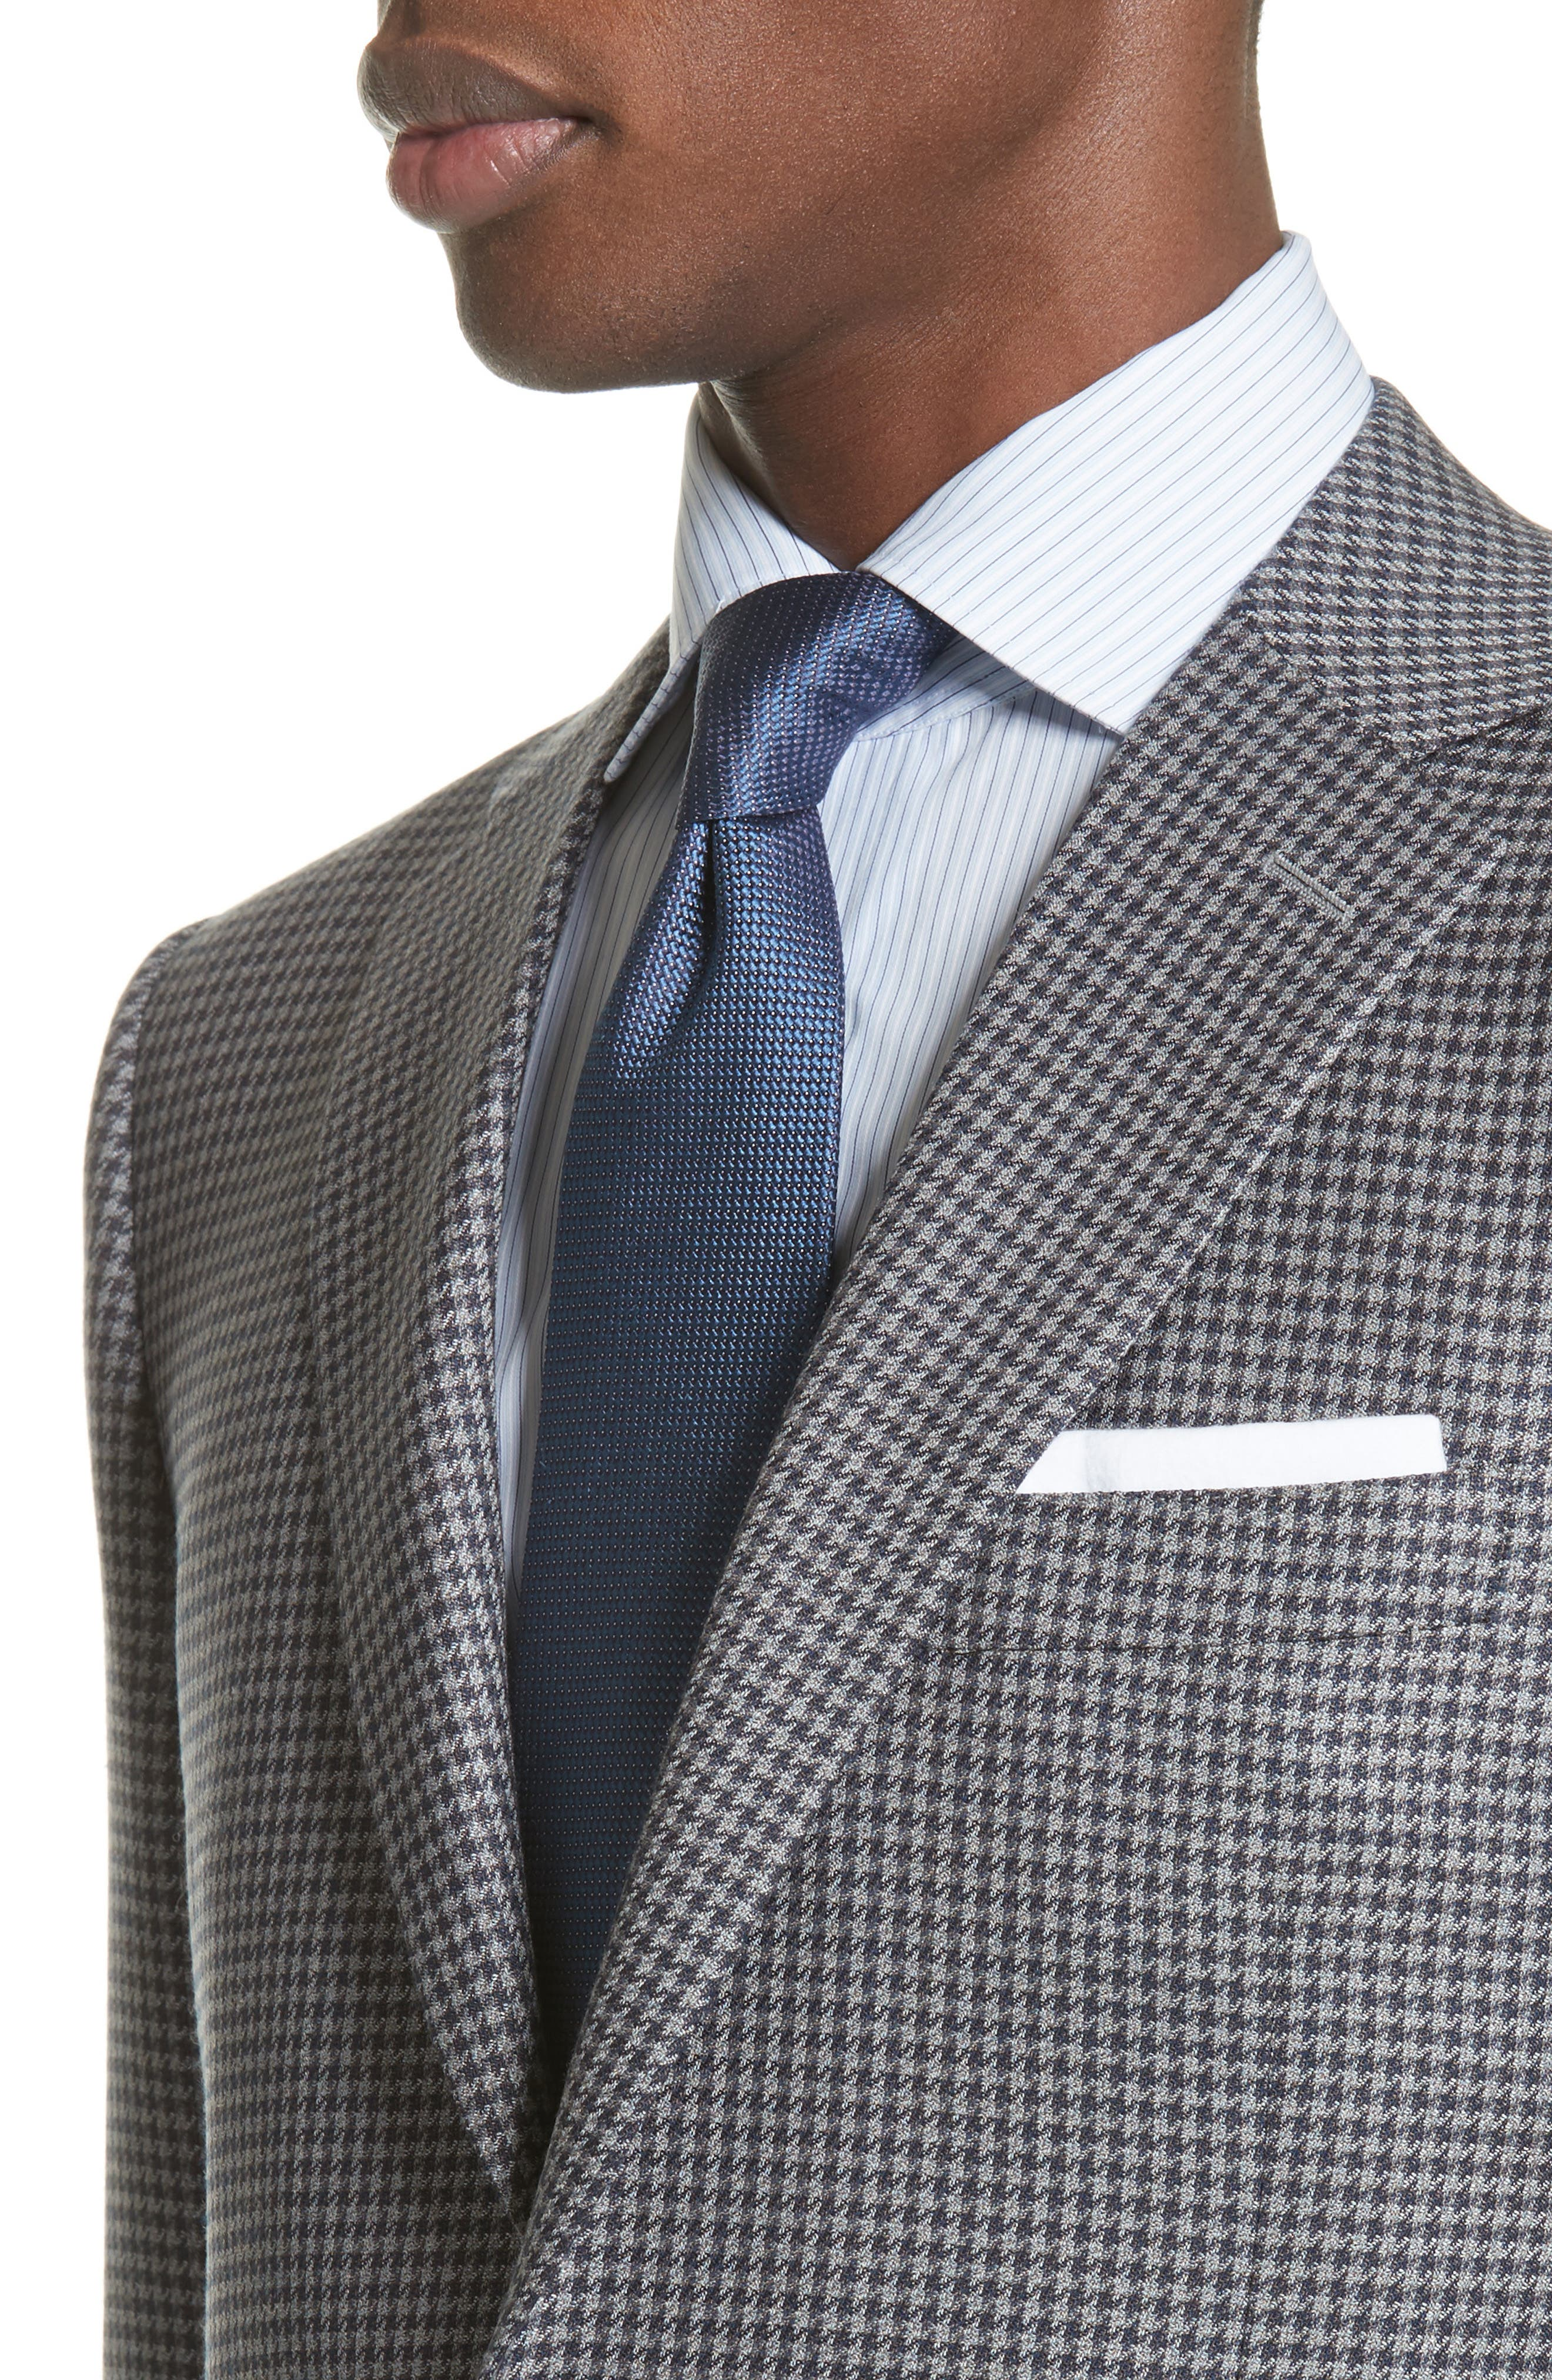 Classic Fit Houndstooth Wool Sport Coat,                             Alternate thumbnail 4, color,                             Blue